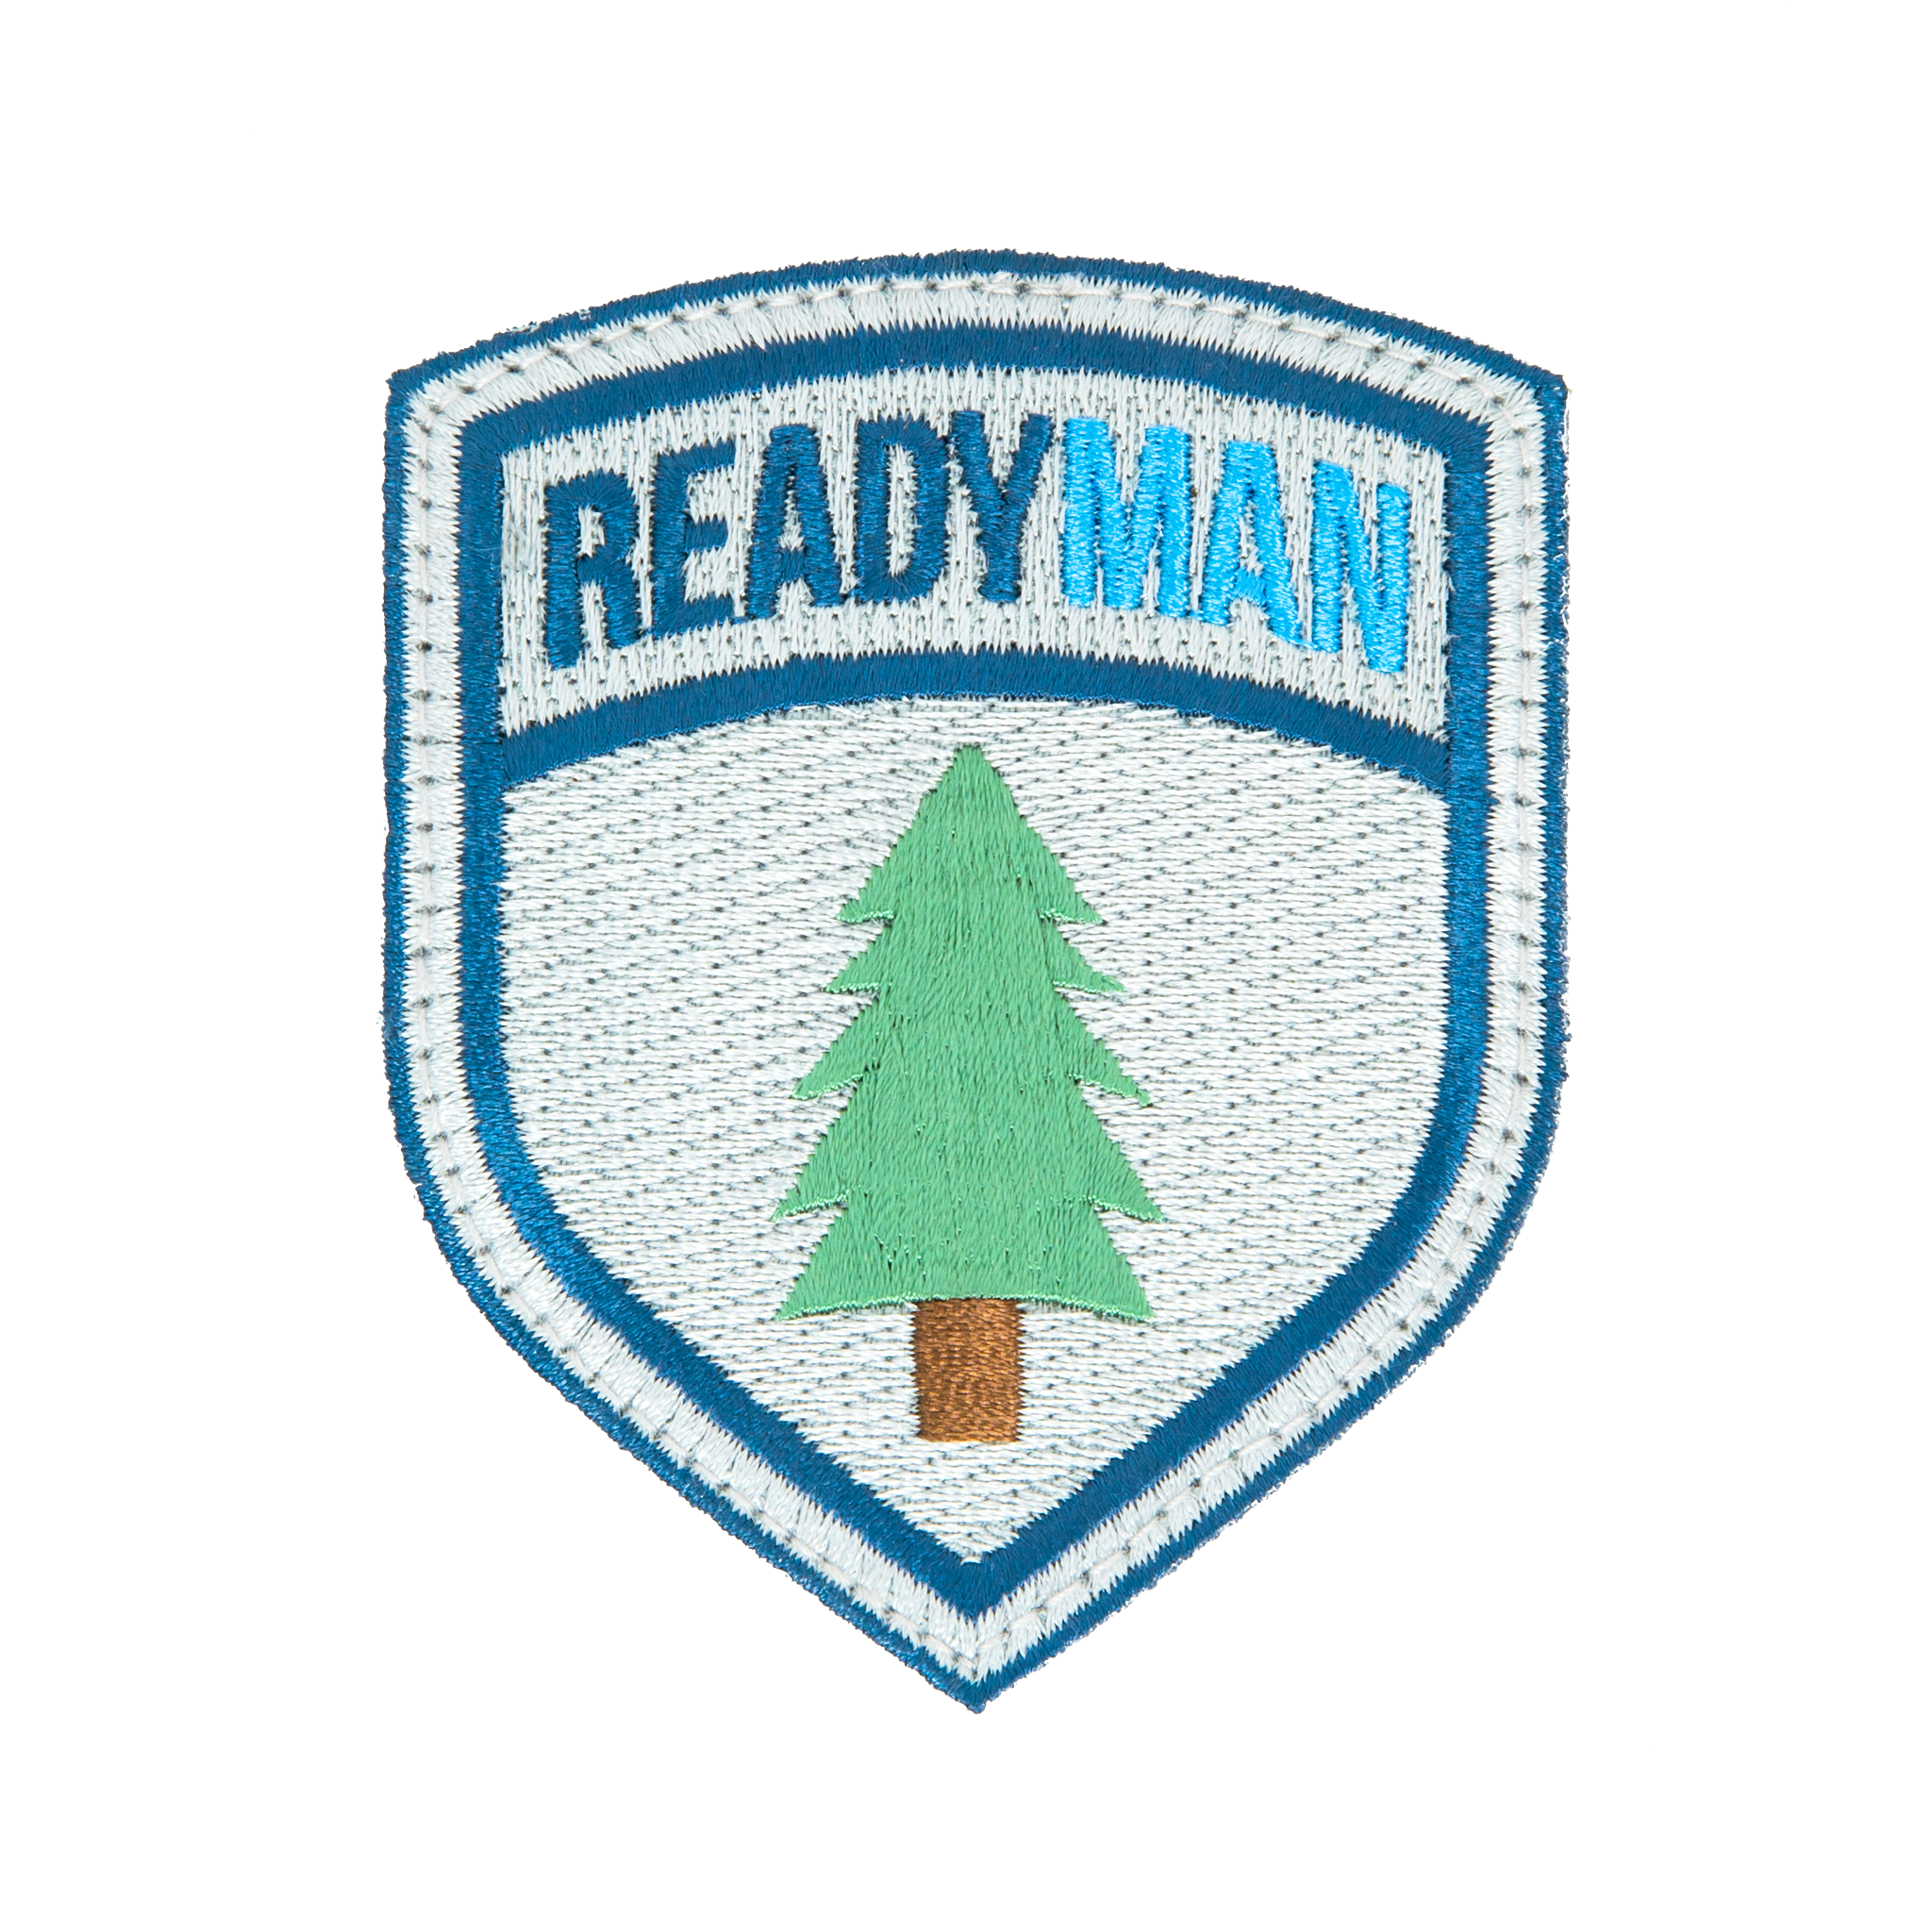 READYMAN Bushcraft Shield Patch